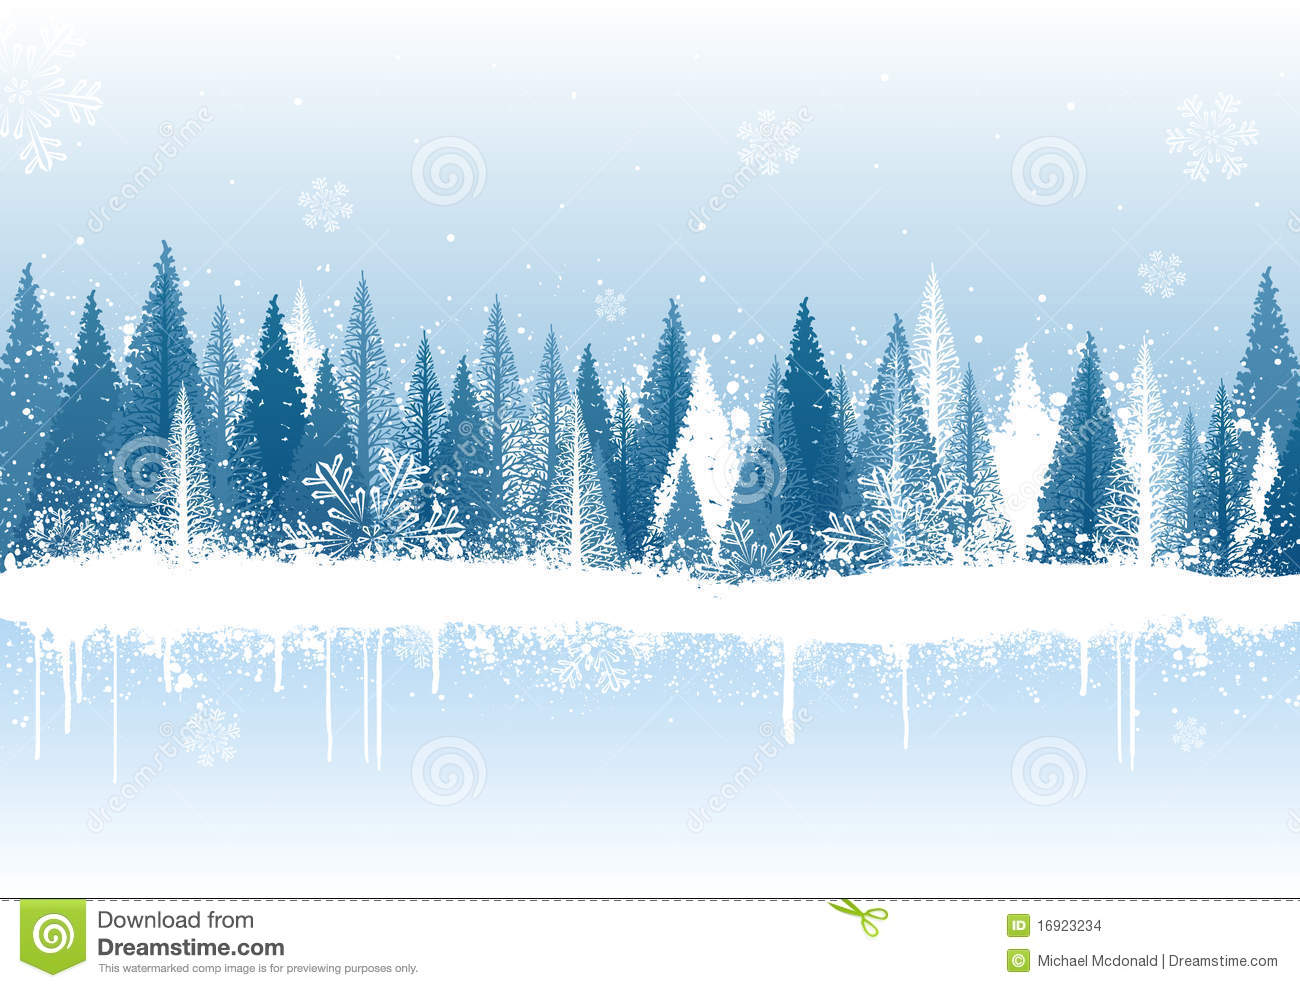 Clipart forest winter, Clipart forest winter Transparent.